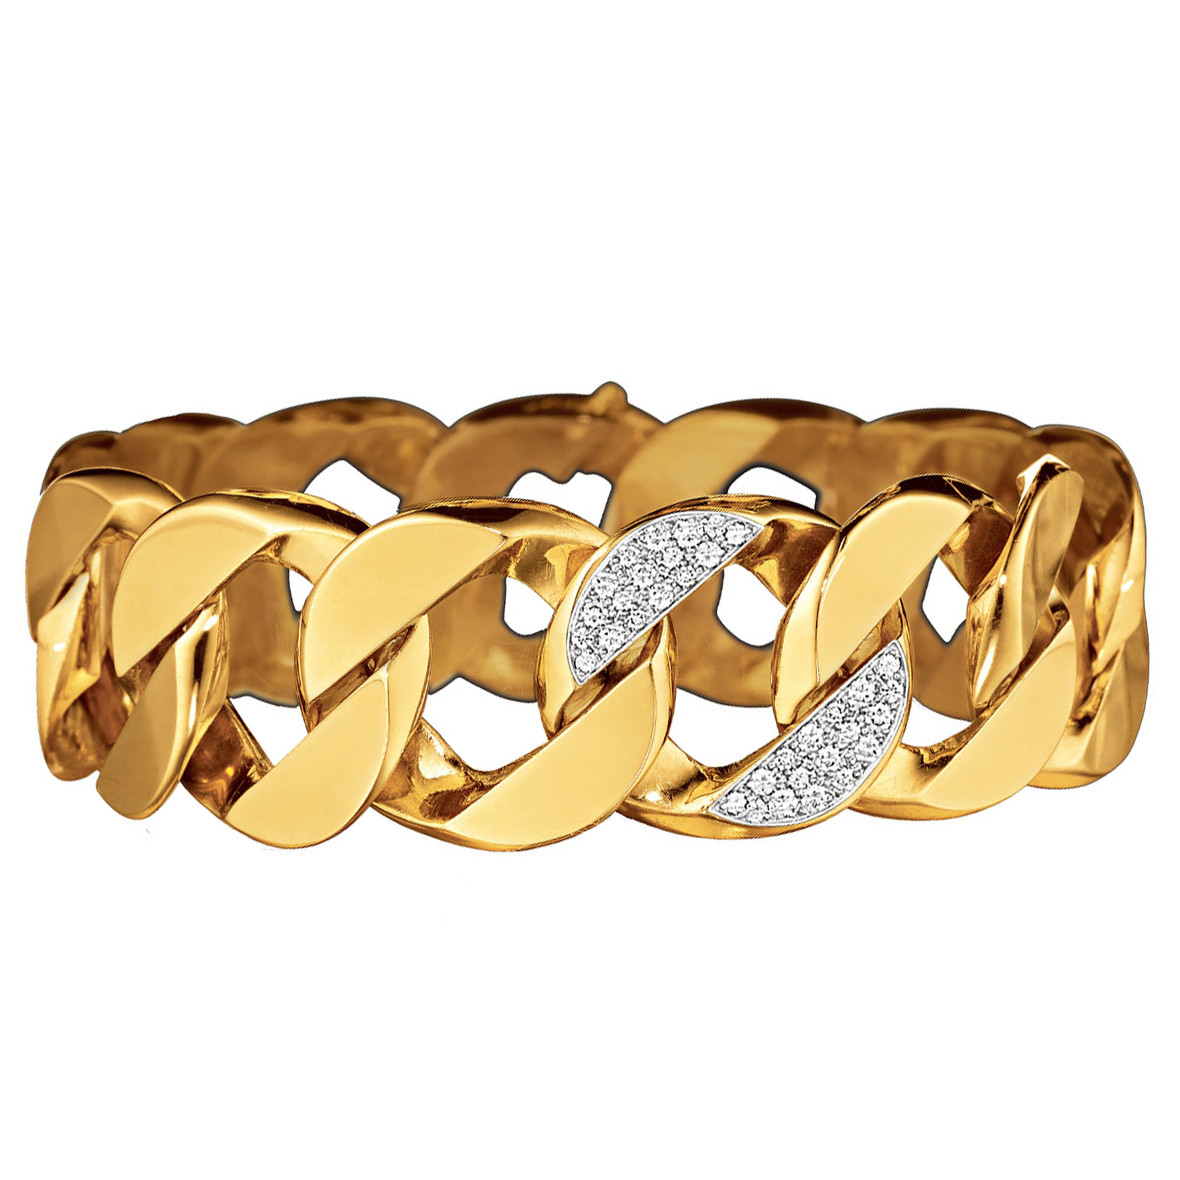 18k Yellow Gold & Diamond Curb-Link Bracelet